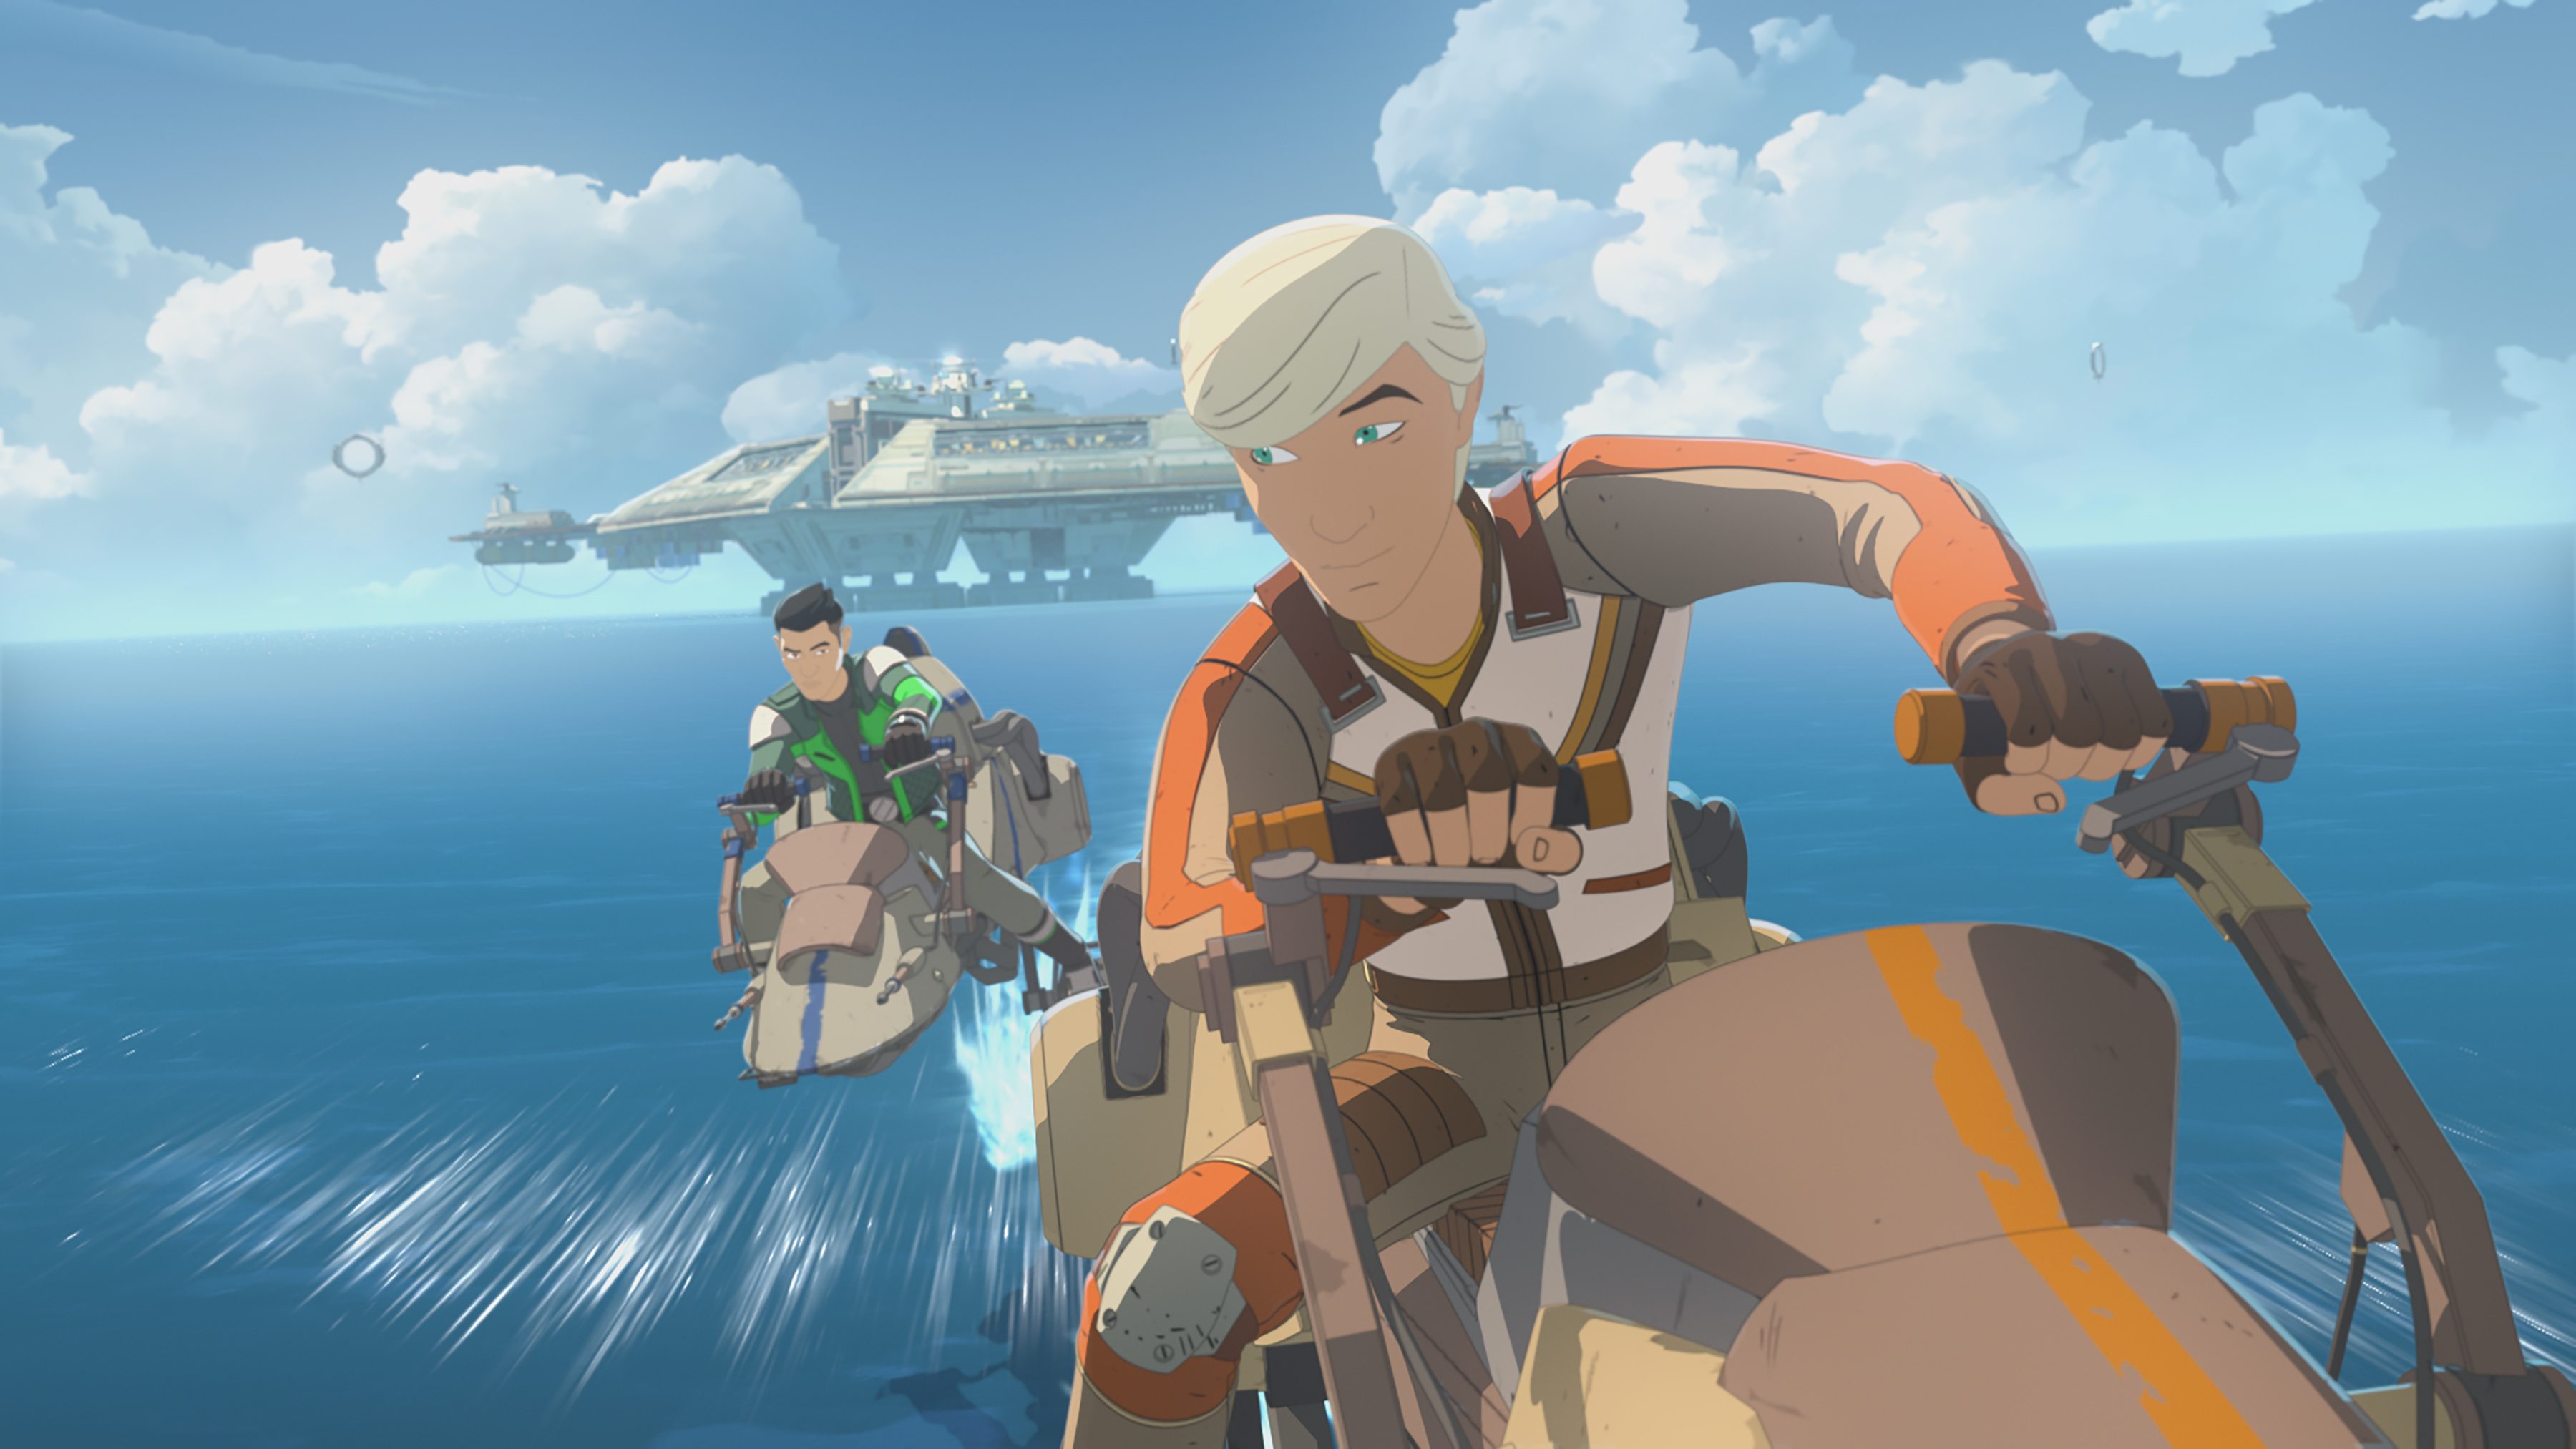 Elijah Wood Guest Voices on the New Episode of Star Wars Resistance